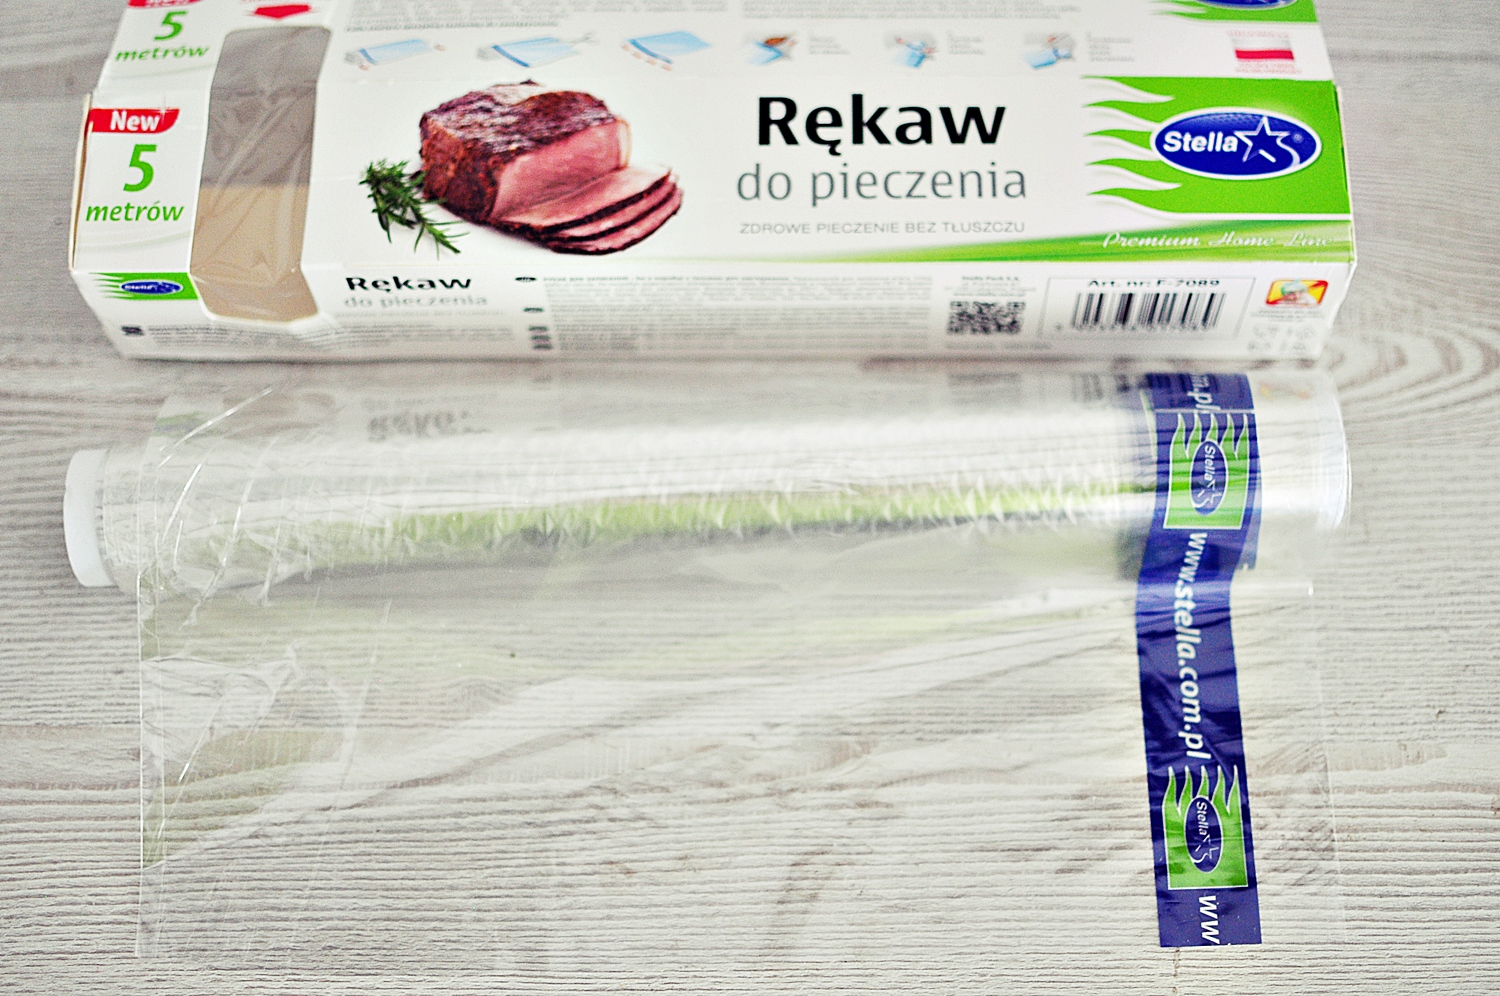 rekaw-do-pieczenia